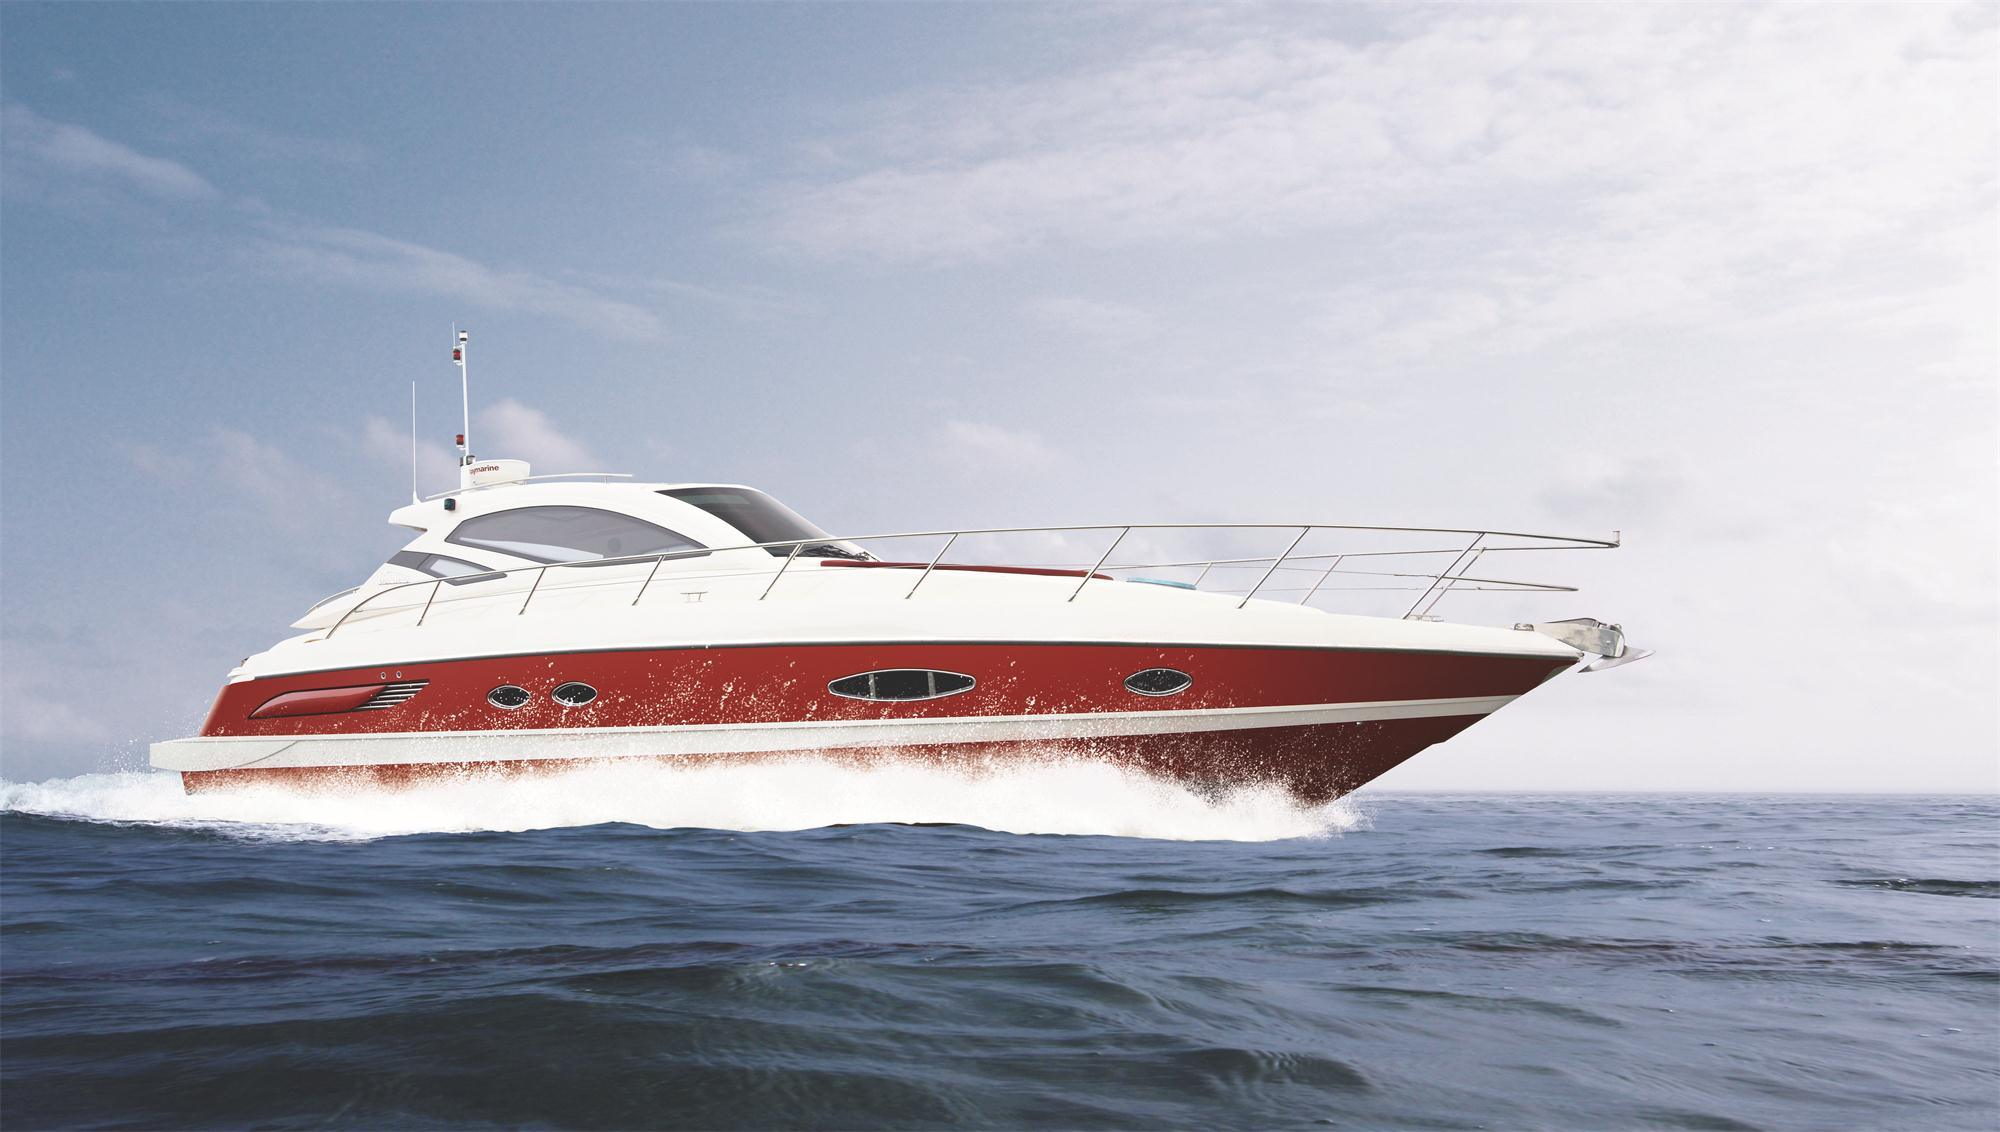 Seastella 46ft Luxury Sport Yacht with Express Cruiser